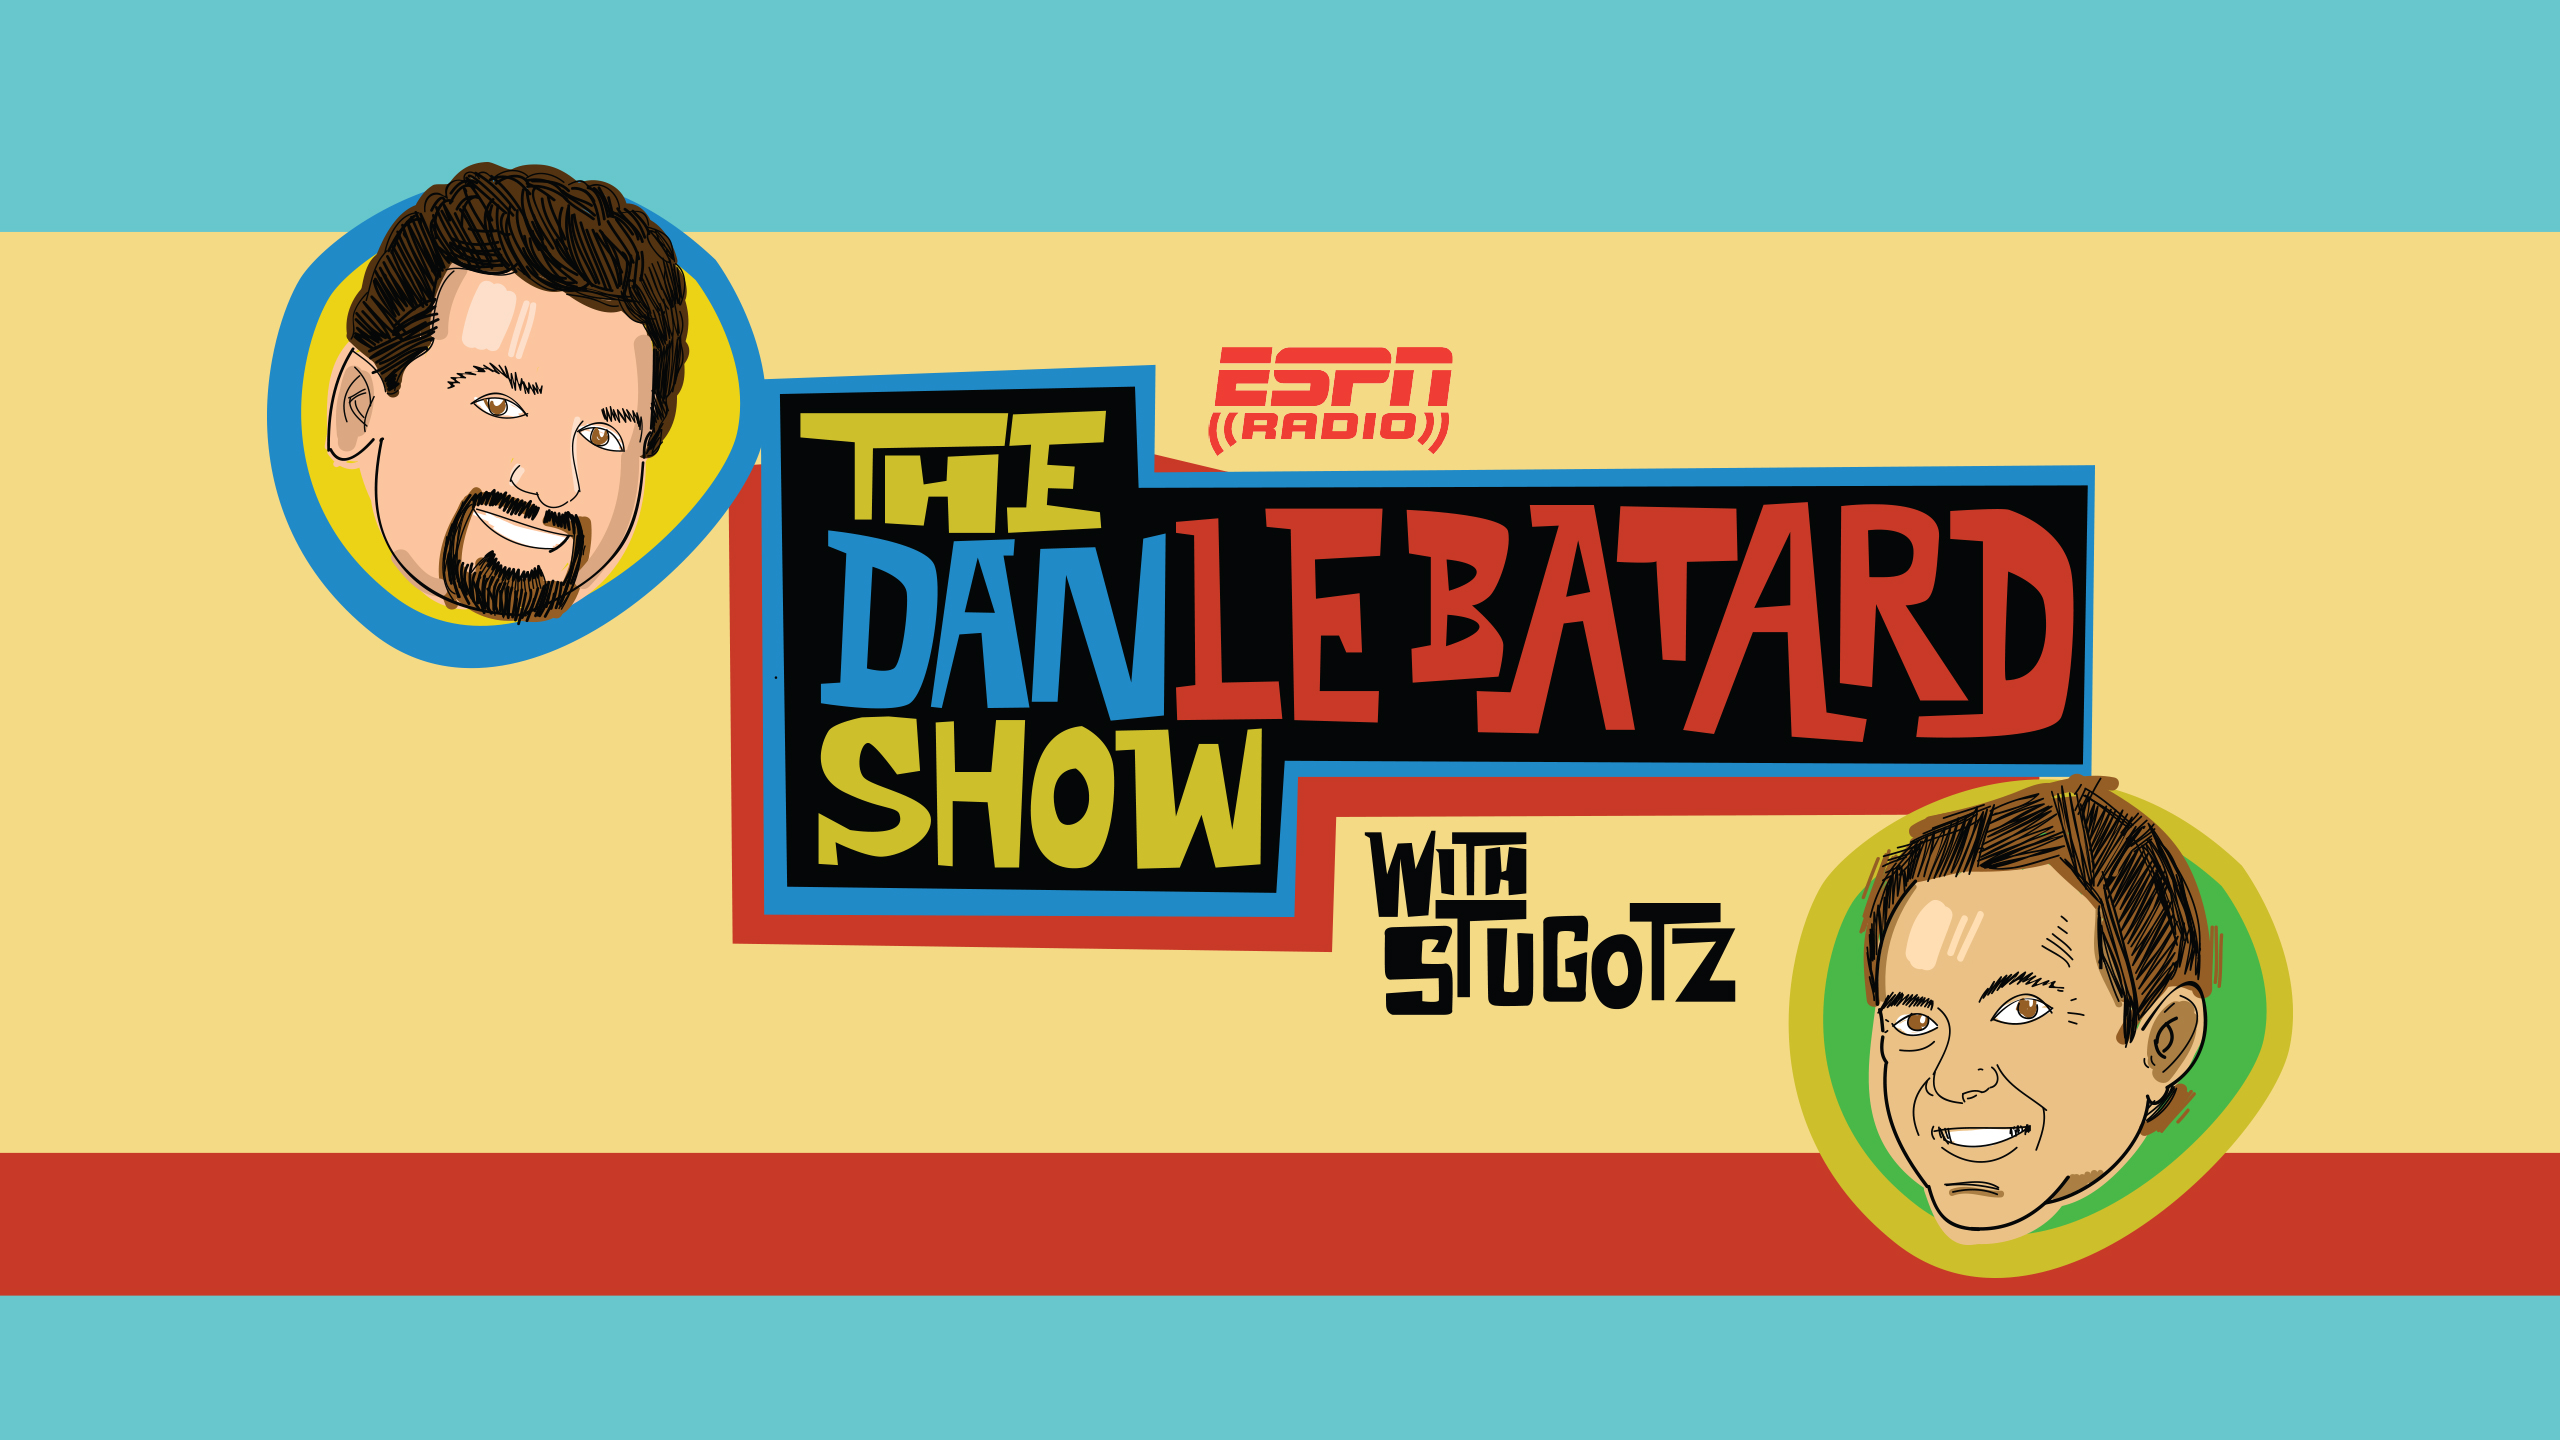 Tue, 1/15 - The Dan Le Batard Show with Stugotz Presented by Progressive